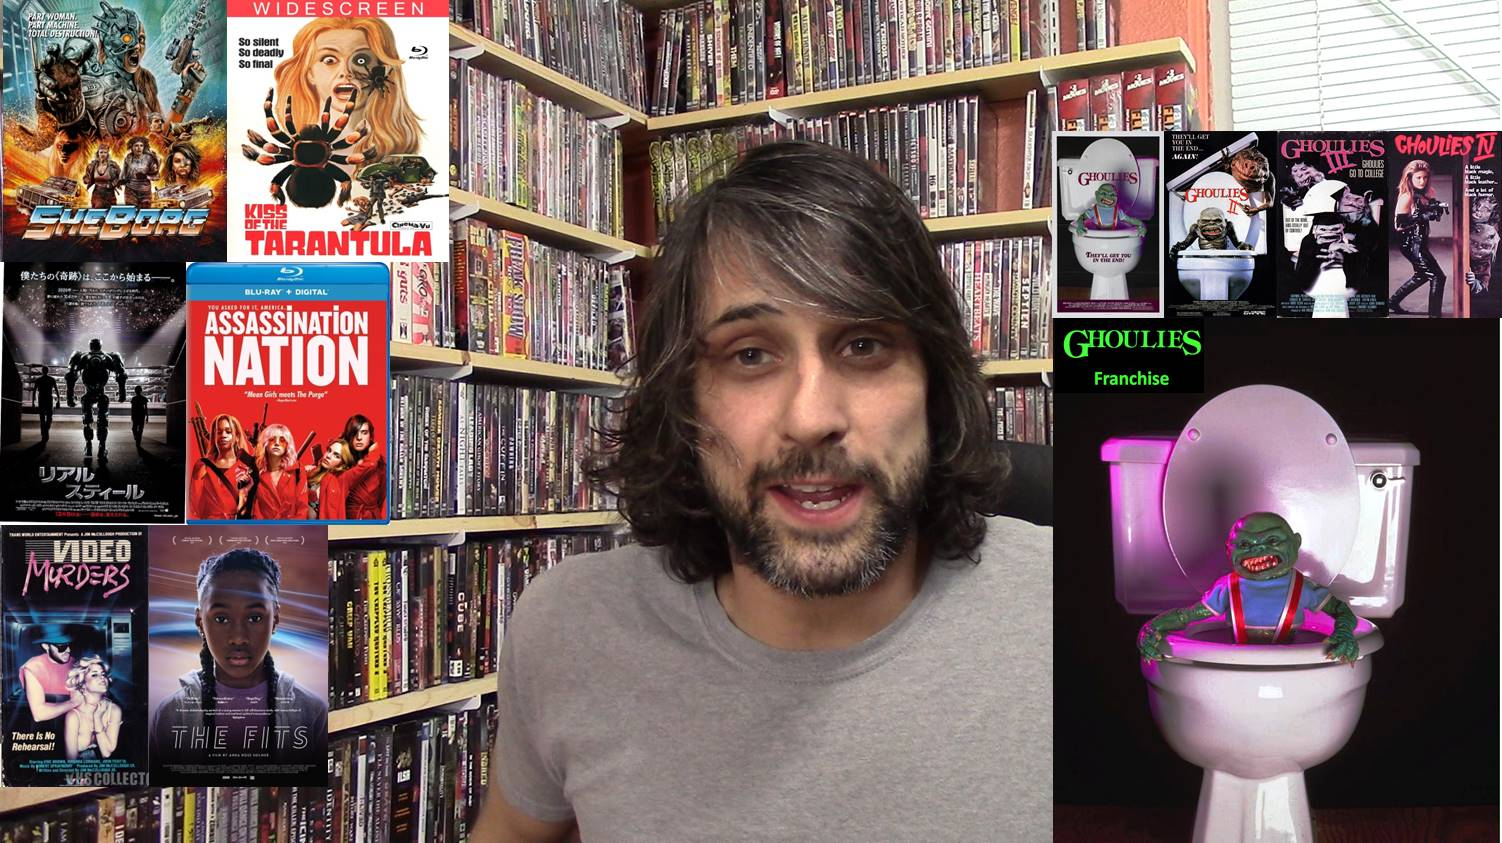 Mrparka's Weekly Reviews Episode 89 (Audio Version) (Ghoulies Franchise)